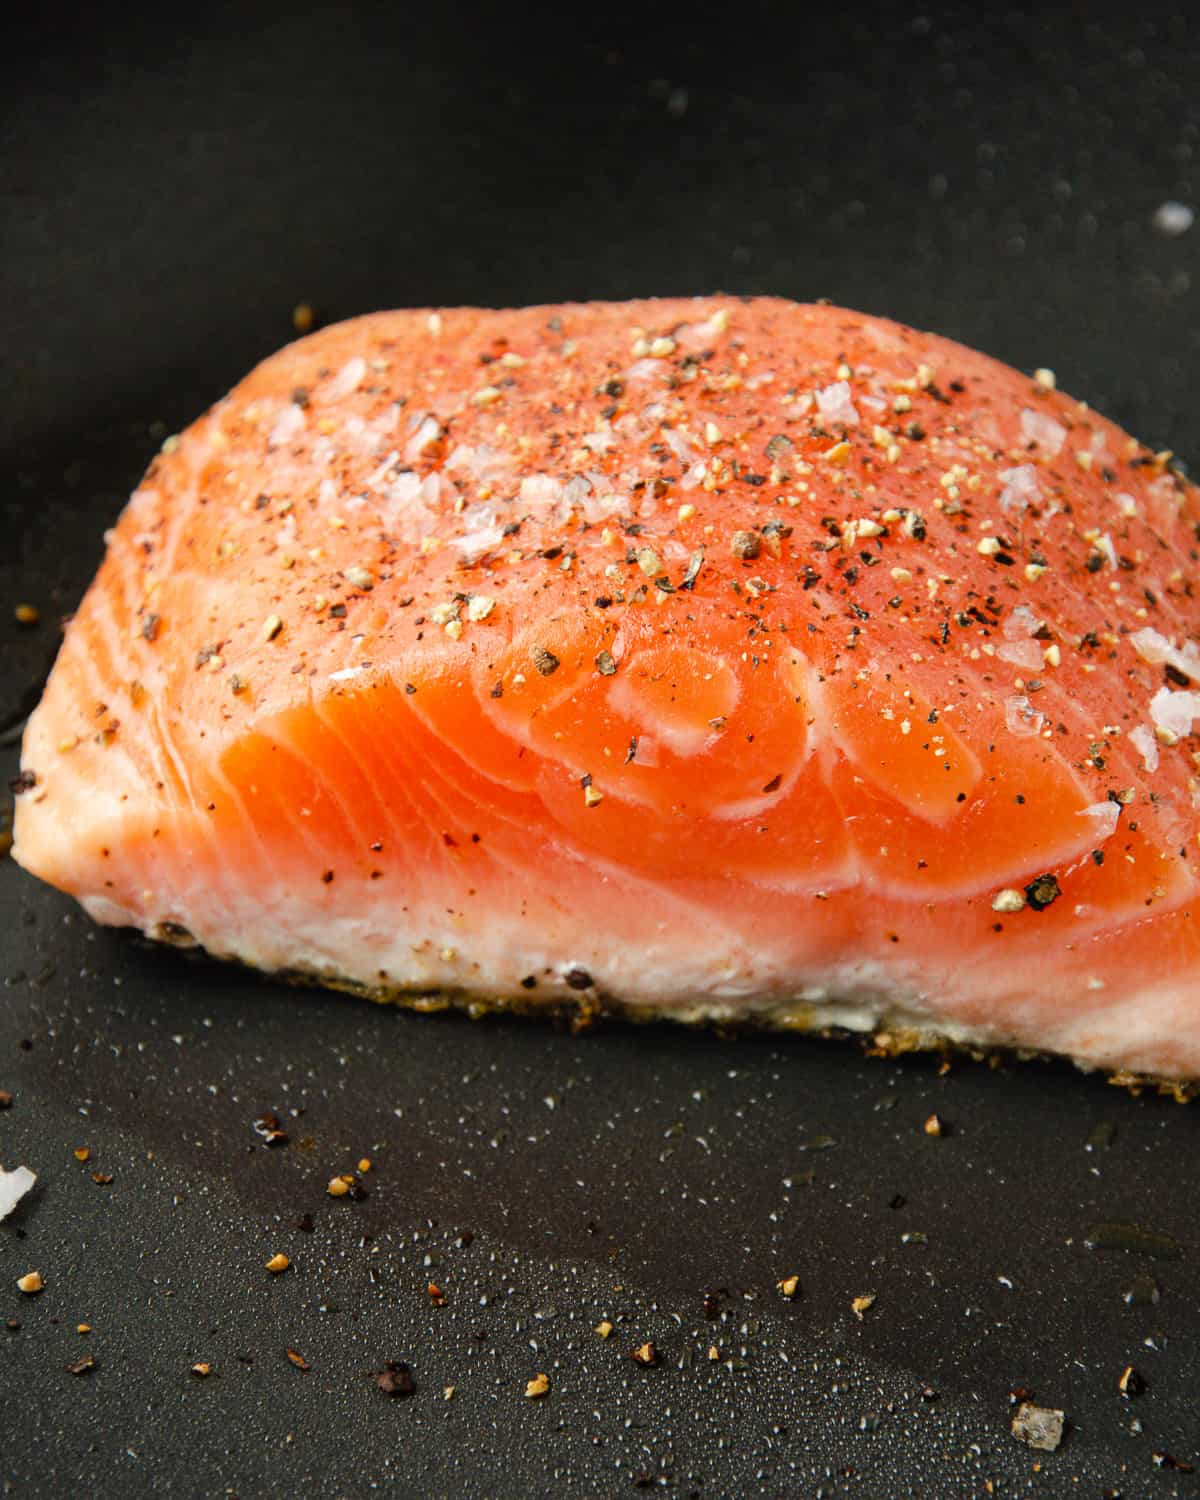 A filet of salmon on the pan that is cooked halfway up.